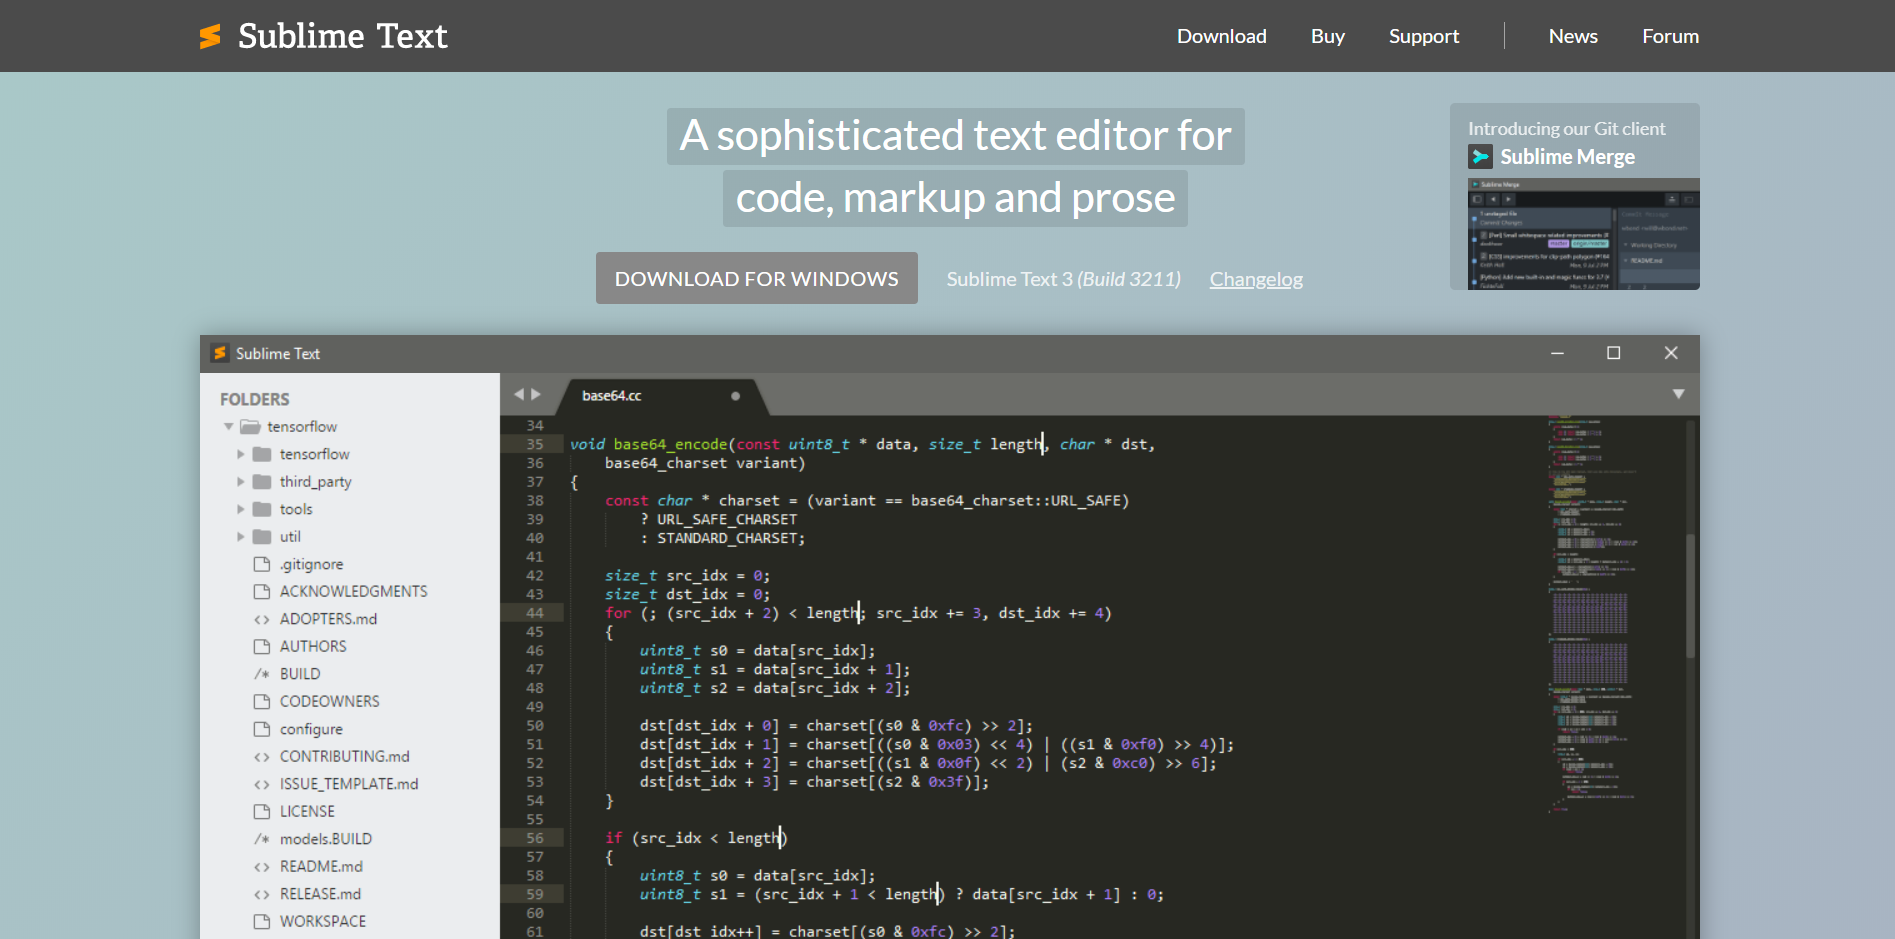 Sublime Text landing page